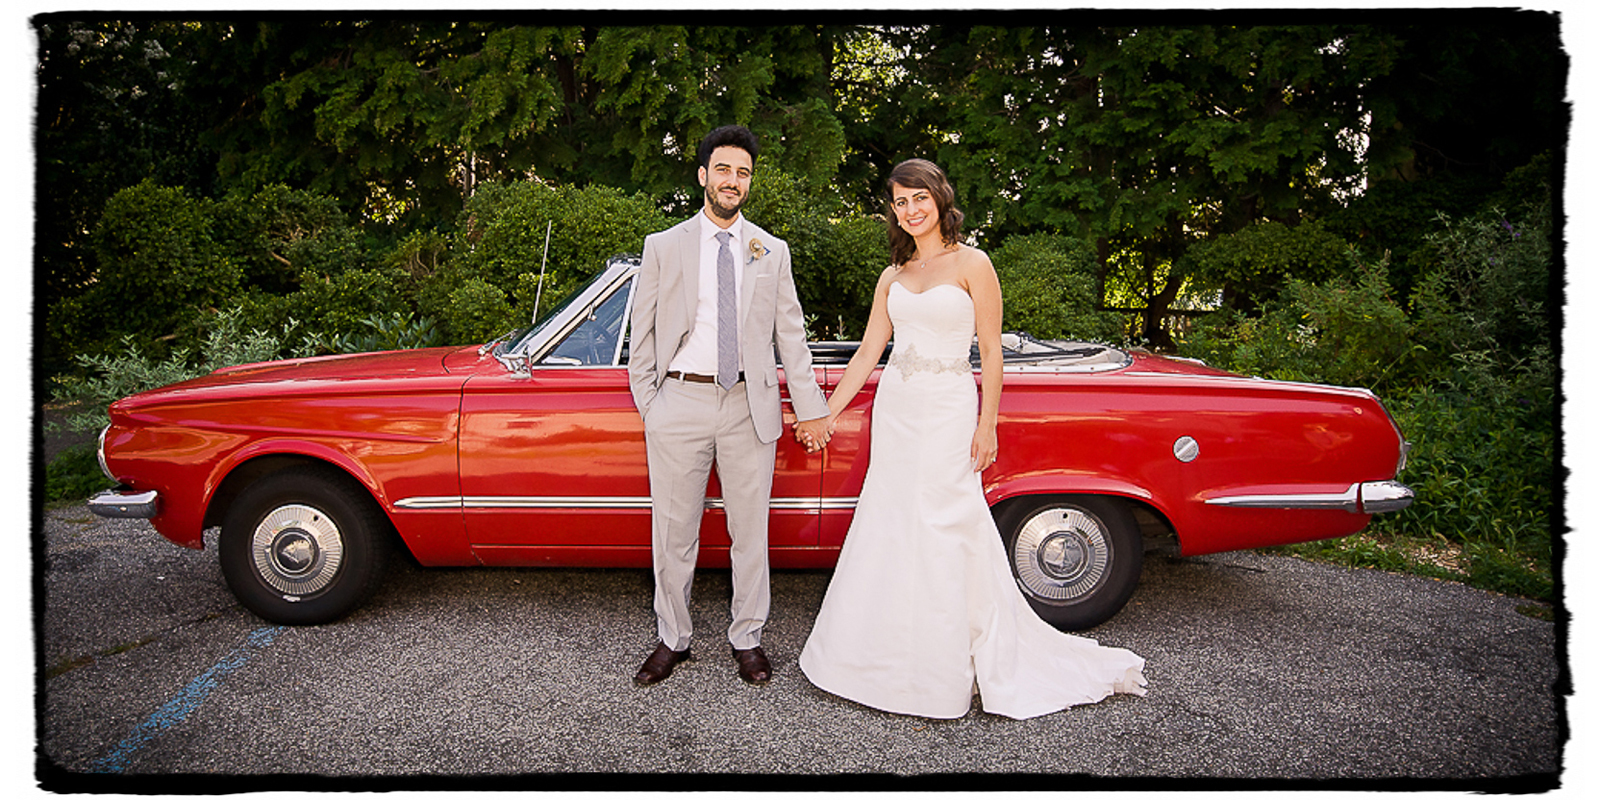 Tracey and Ben definitely wanted a shot with the vintage convertable that was to be their getaway car at the end of this vintage DIY themed wedding at Alder Manor.